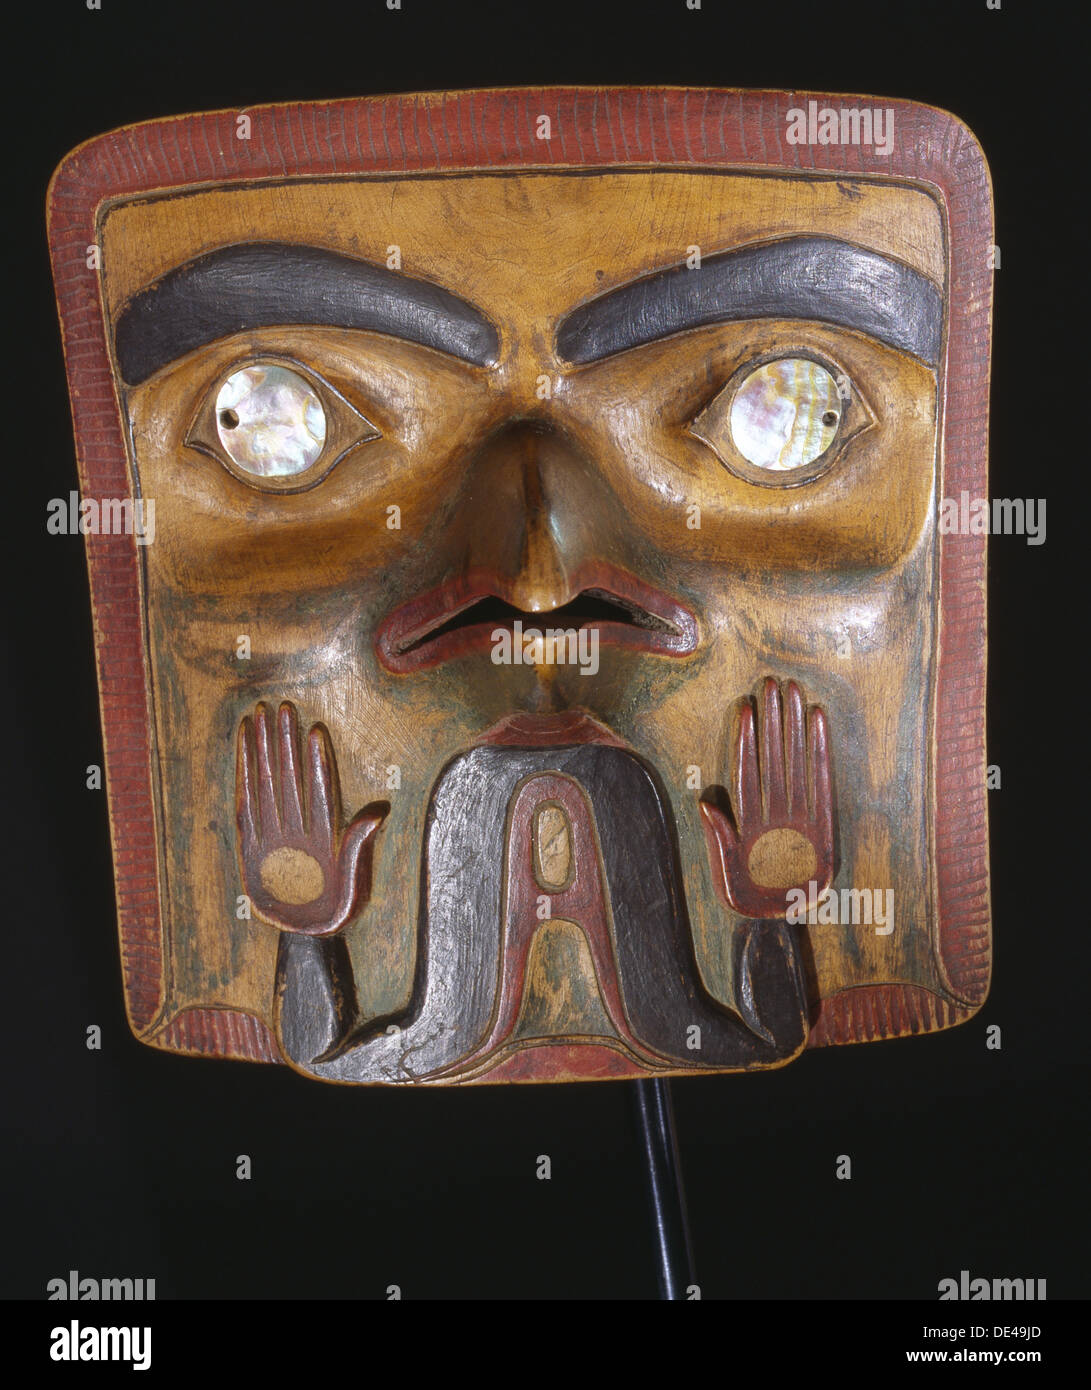 Frontlet worn by a chief attached to his headdress. - Stock Image